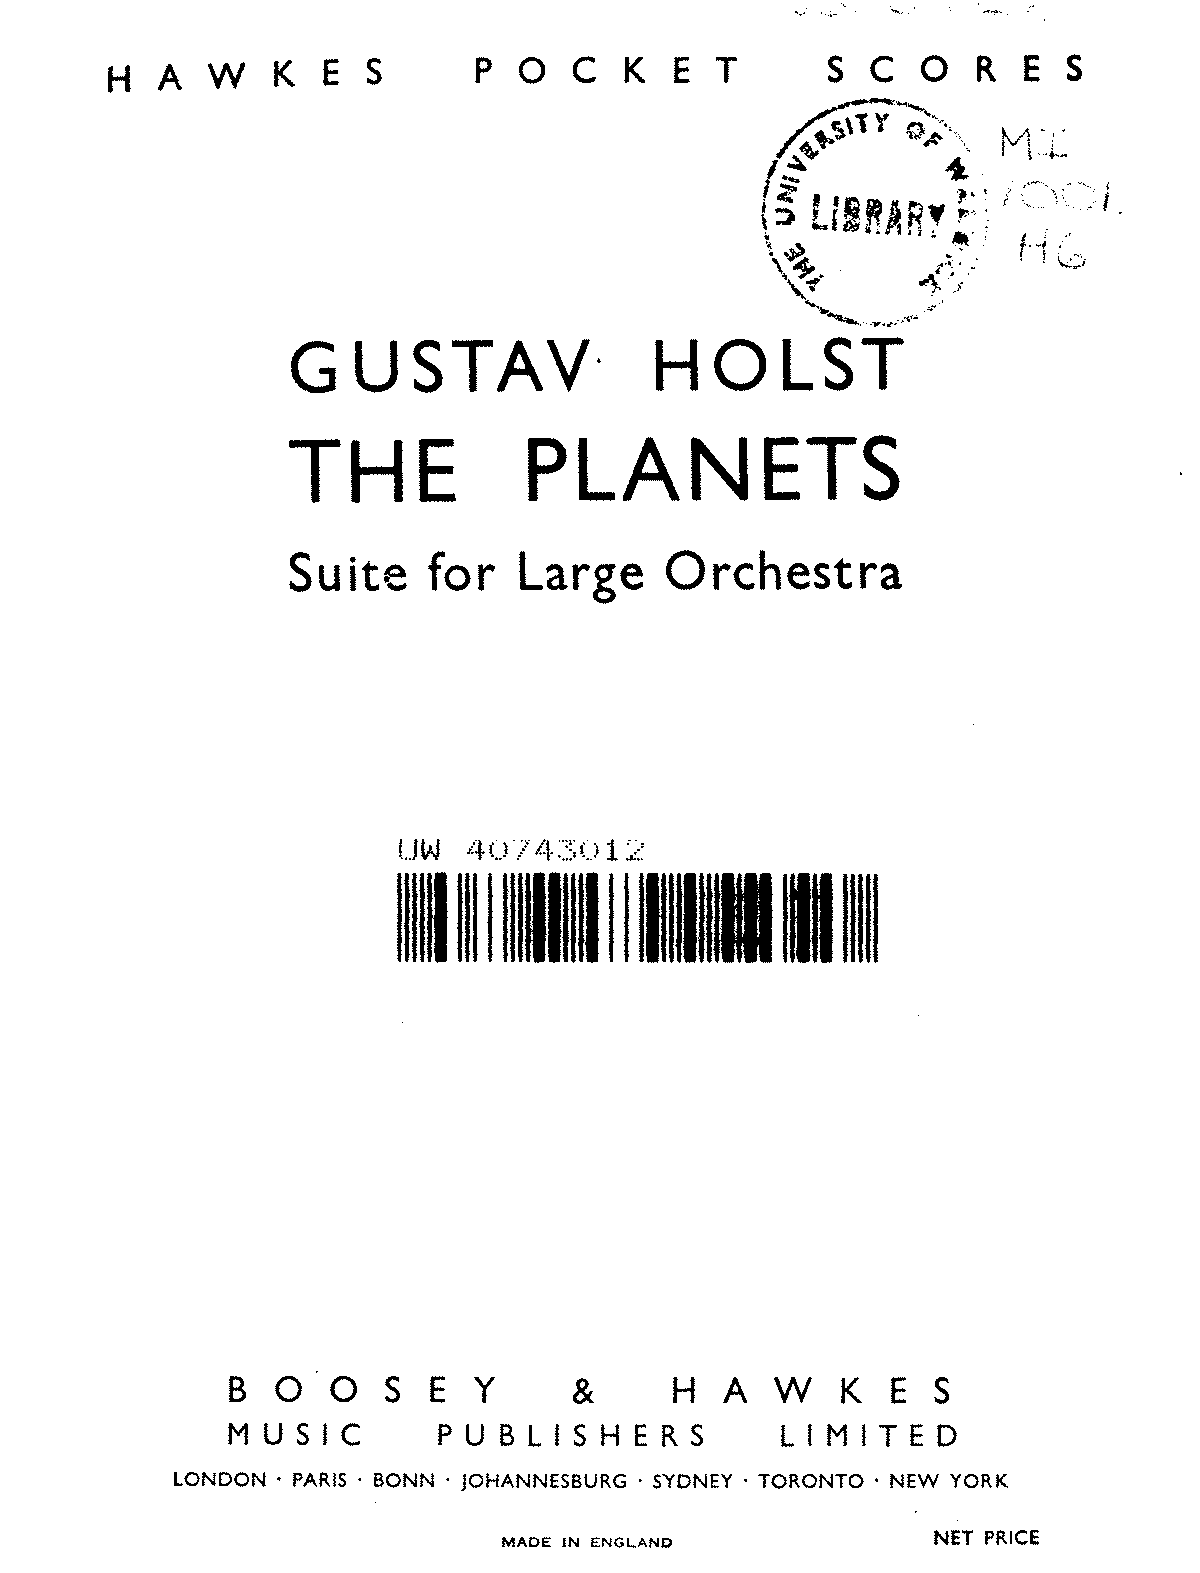 Holst - THE PLANETS - Suite for Large Orchestra - Partitur.pdf